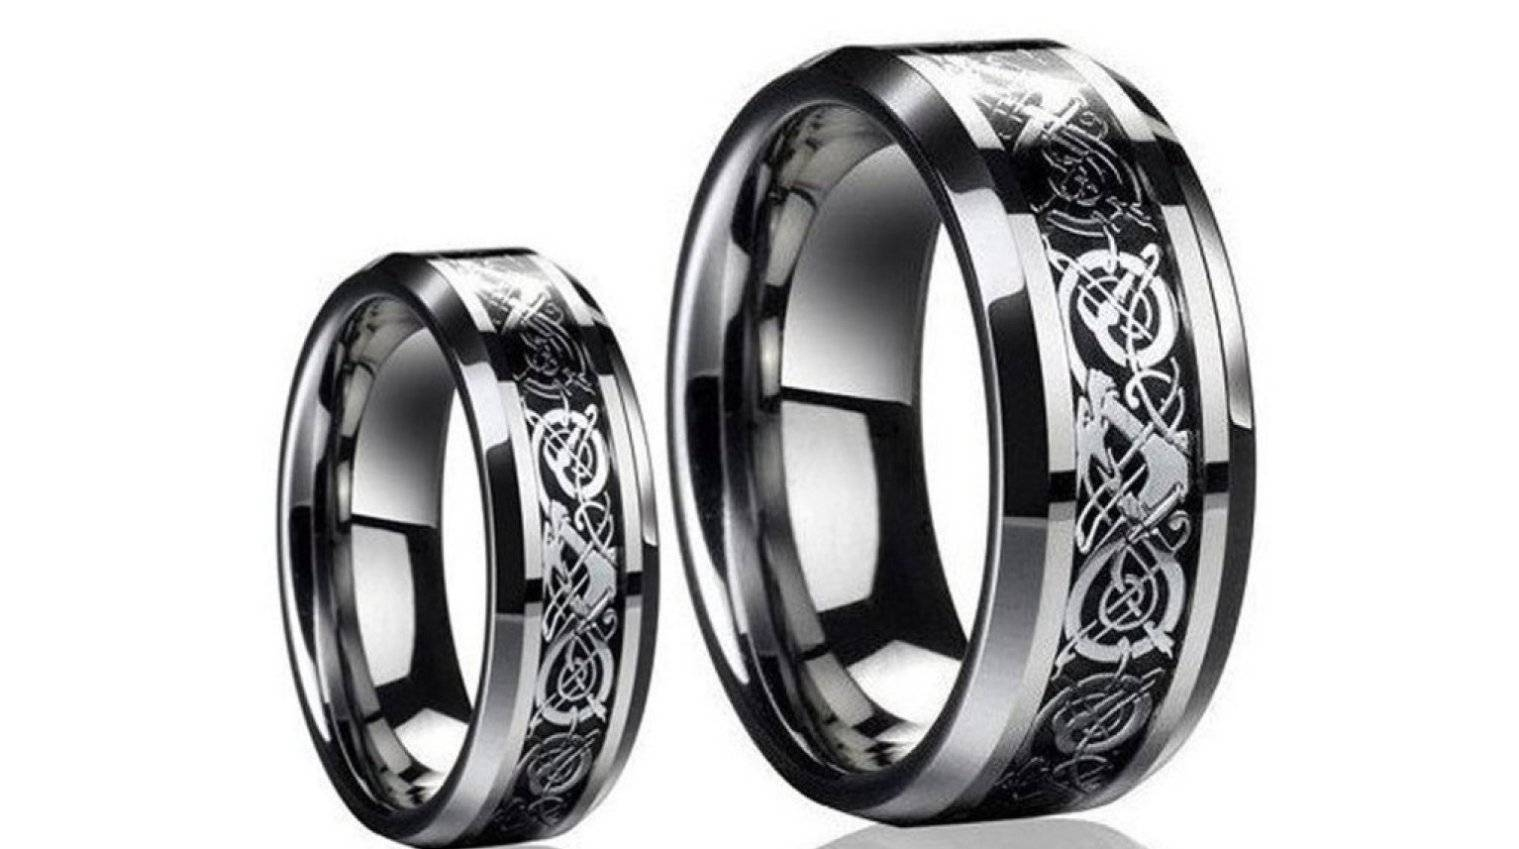 Top Pictures Wedding Jewelry New York City With Wedding Rings Intended For Kohls Wedding Bands (View 15 of 15)